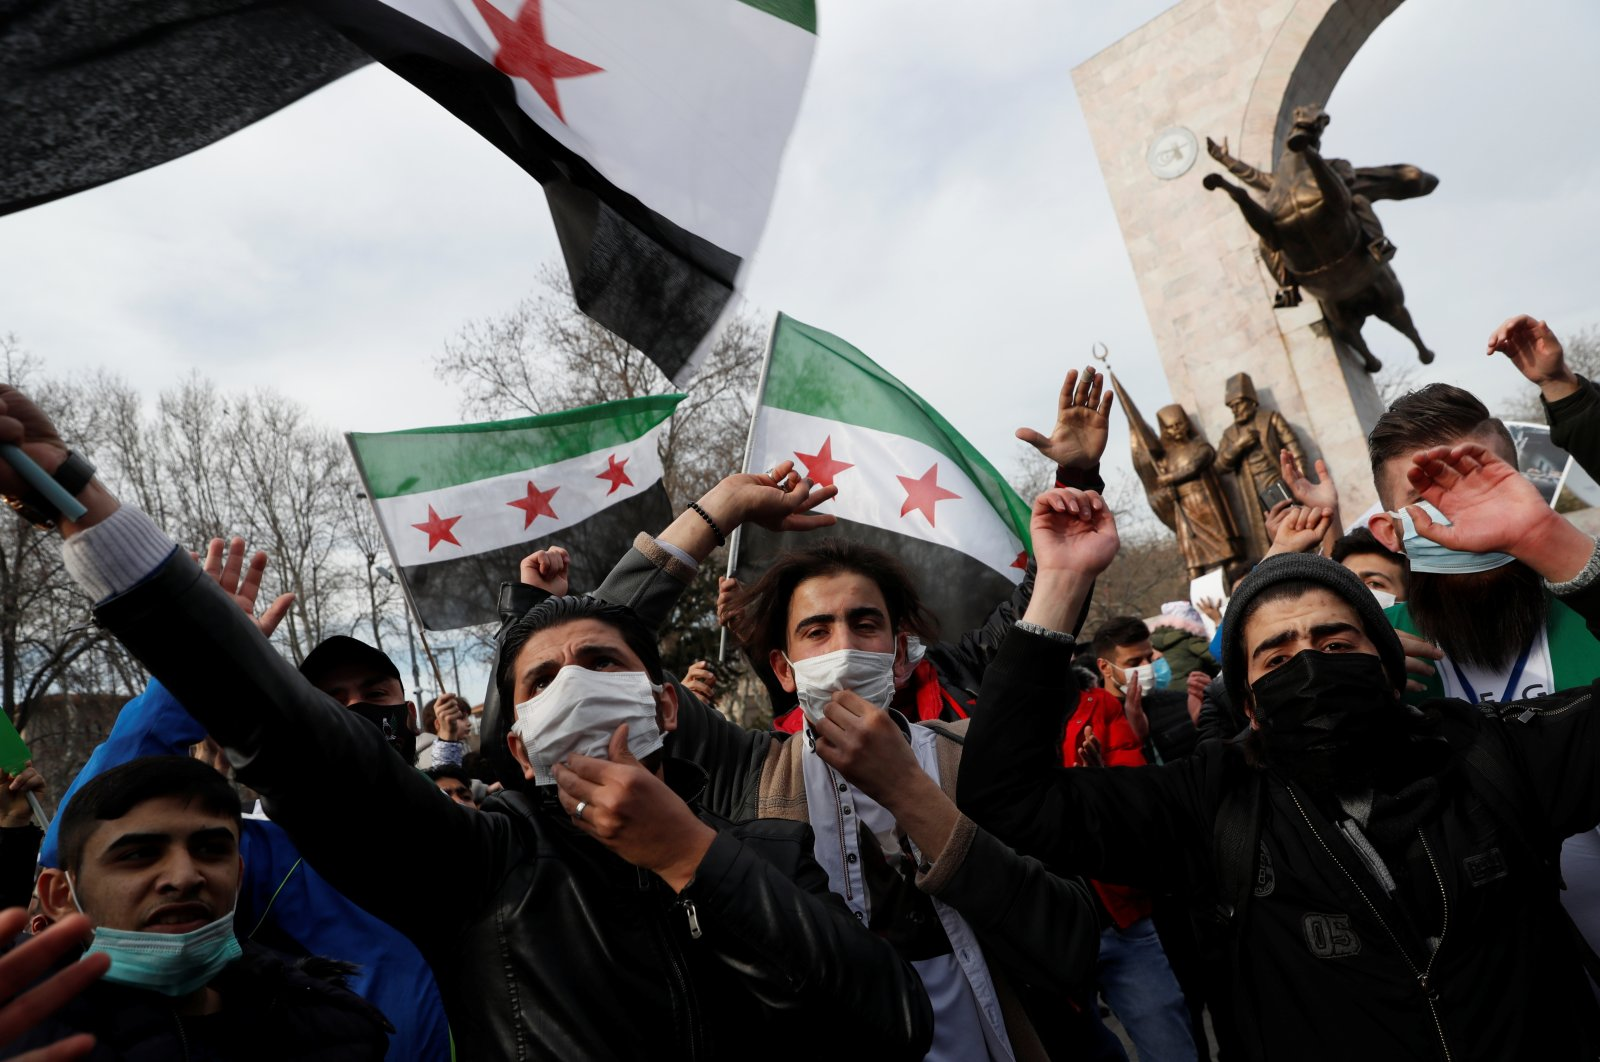 Syrians living in Turkey wave flags during a demonstration to mark the 10th anniversary of the Syrian conflict, Istanbul, Turkey, March 13, 2021. (REUTERS/Murad Sezer)